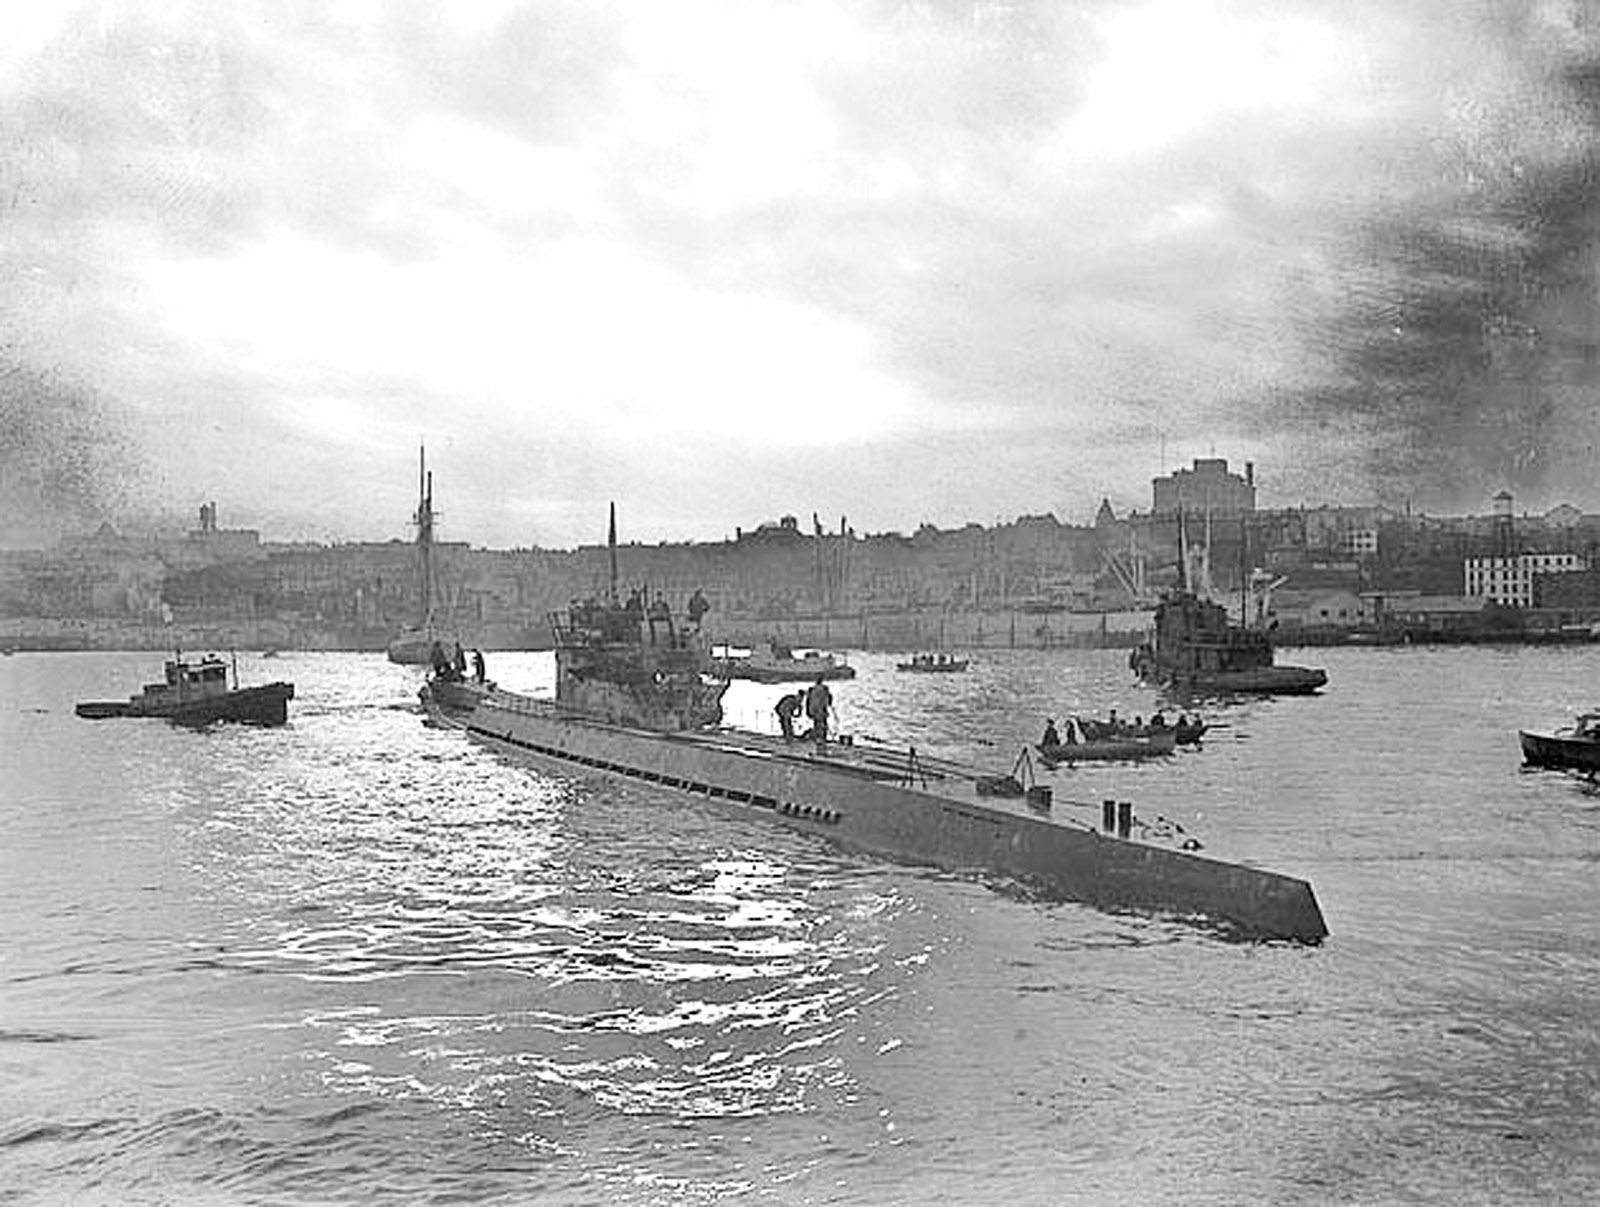 A German U-boat in St. John's after surrendering in 1945.